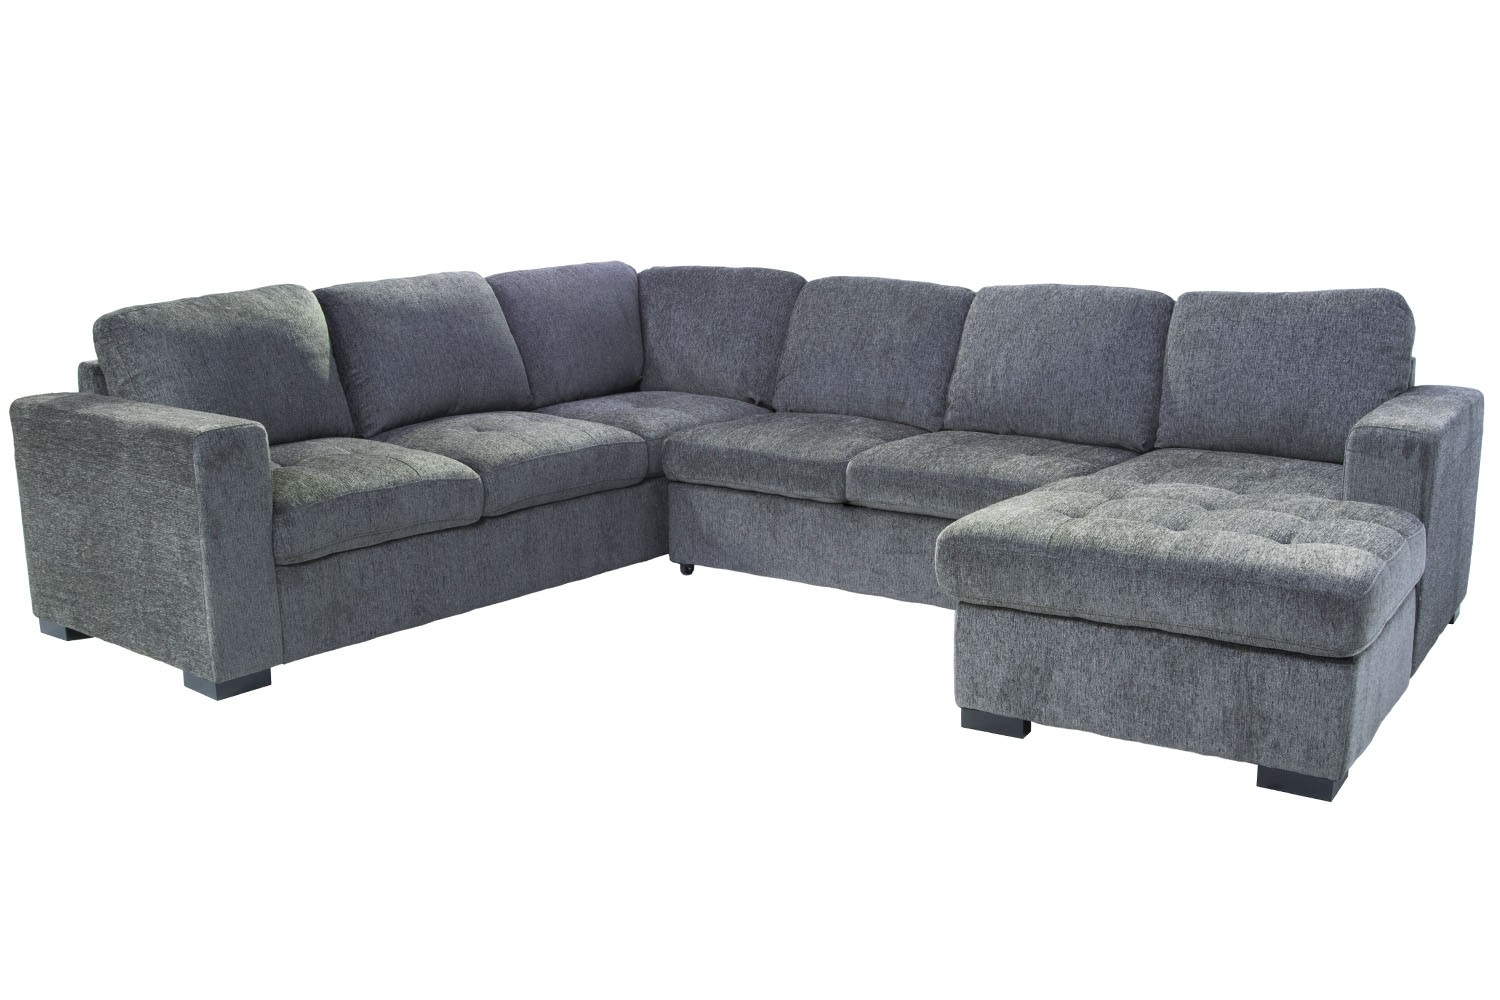 Claire 3 Piece Right Facing Chaise Sectional In Gray | Save Mor For Aquarius Light Grey 2 Piece Sectionals With Laf Chaise (Image 8 of 25)